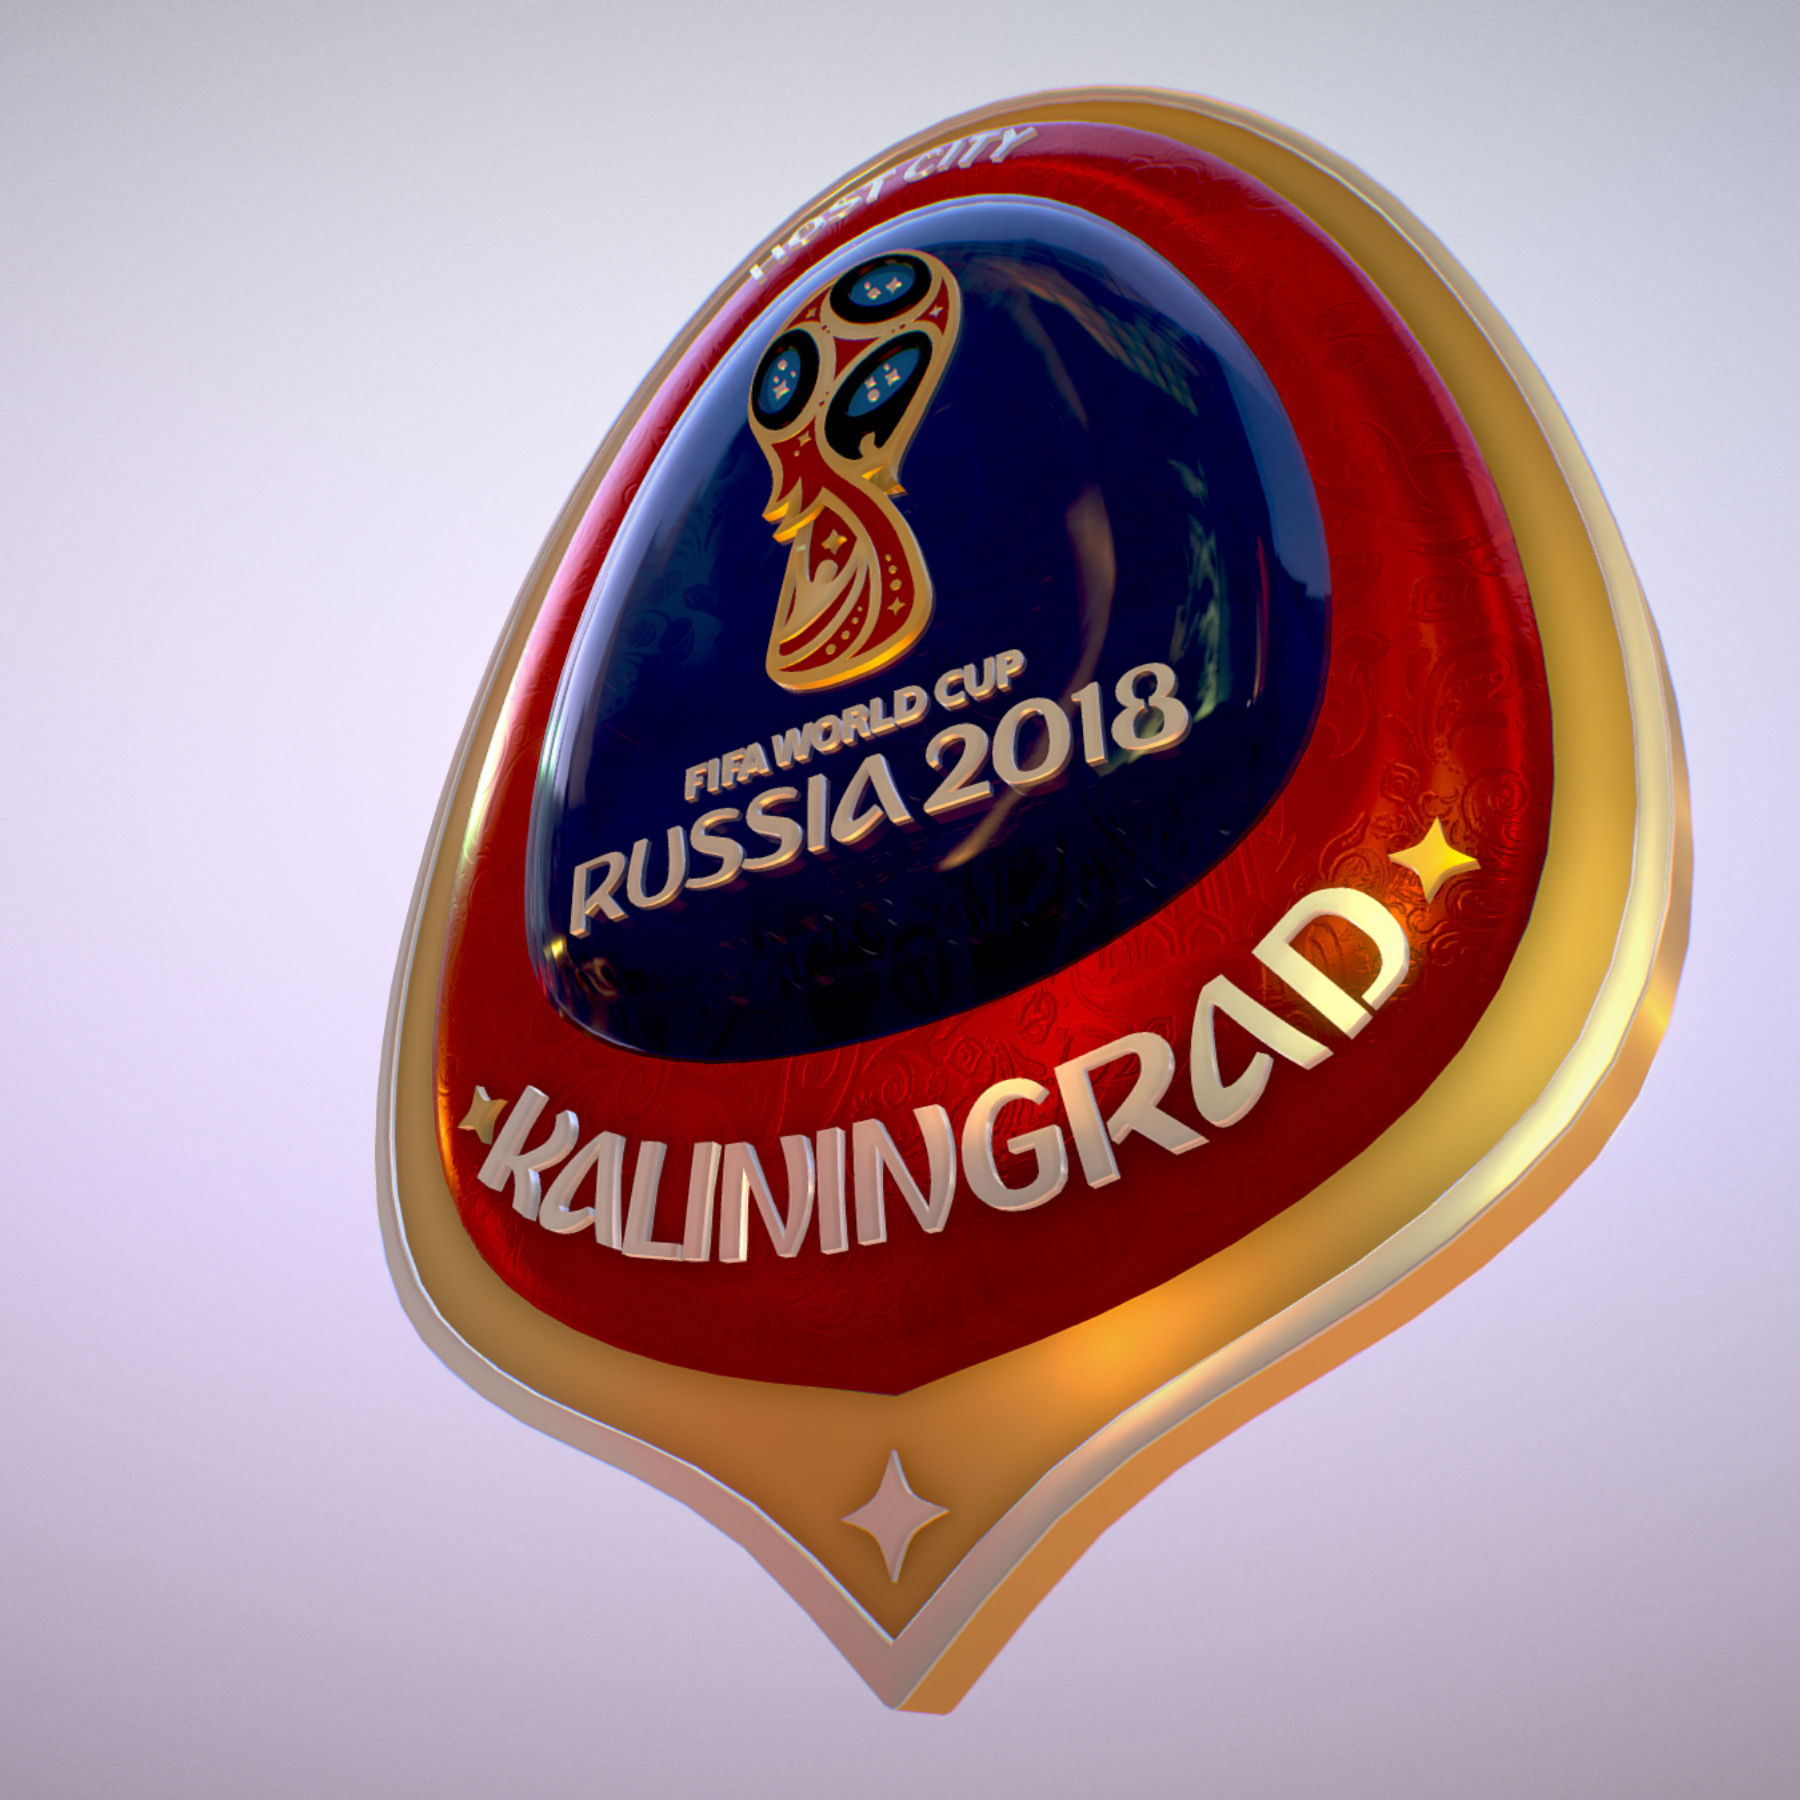 kaliningrad city world cup Rusija 2018 simbol 3d model max fbx jpeg jpg ma mb obj 271755